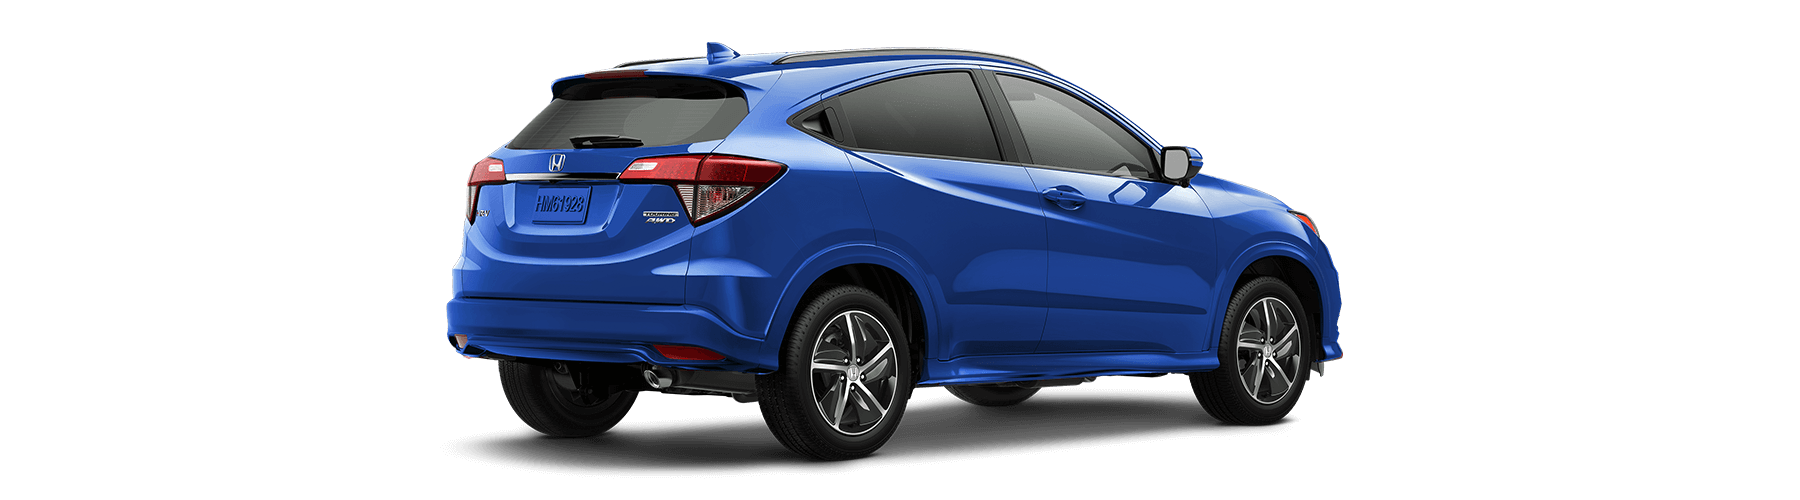 2019 Honda HR-V Rear Angle